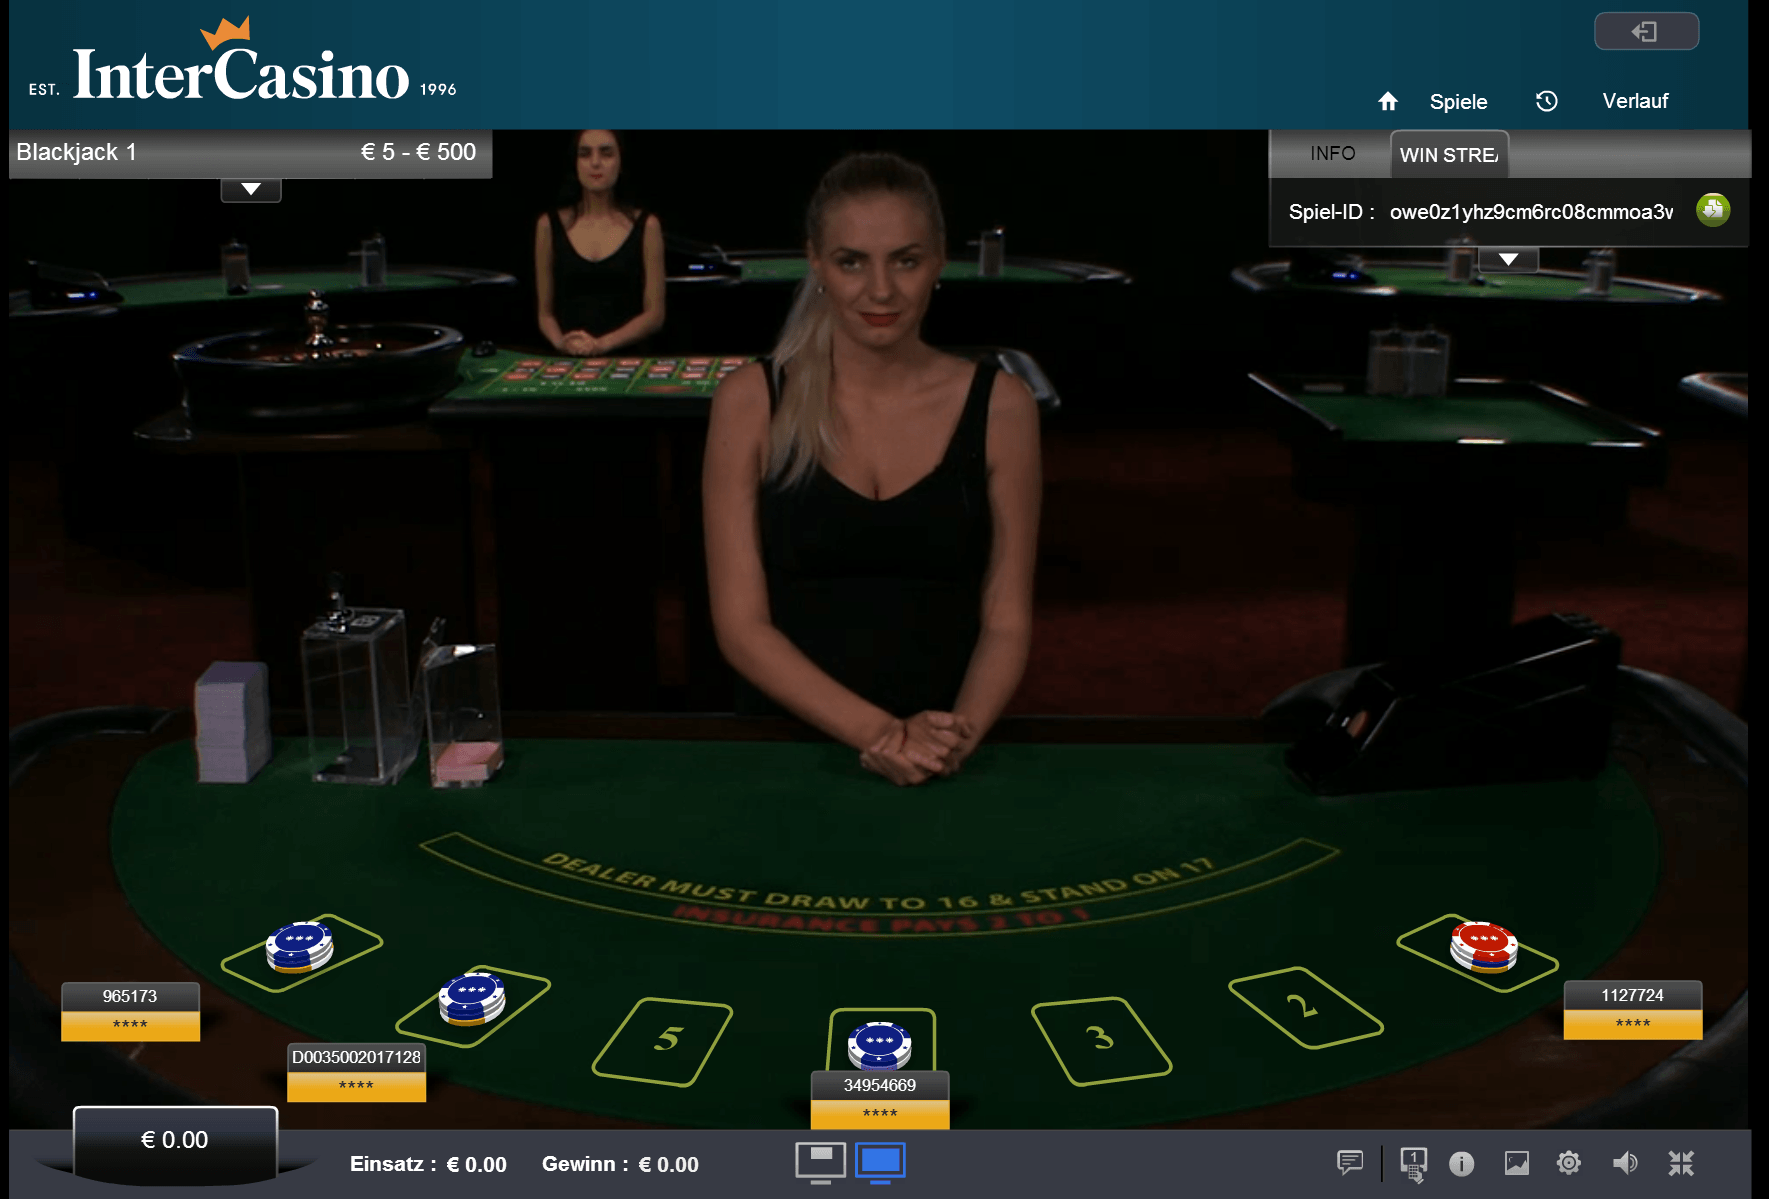 deutschland online casino sizzlin hot